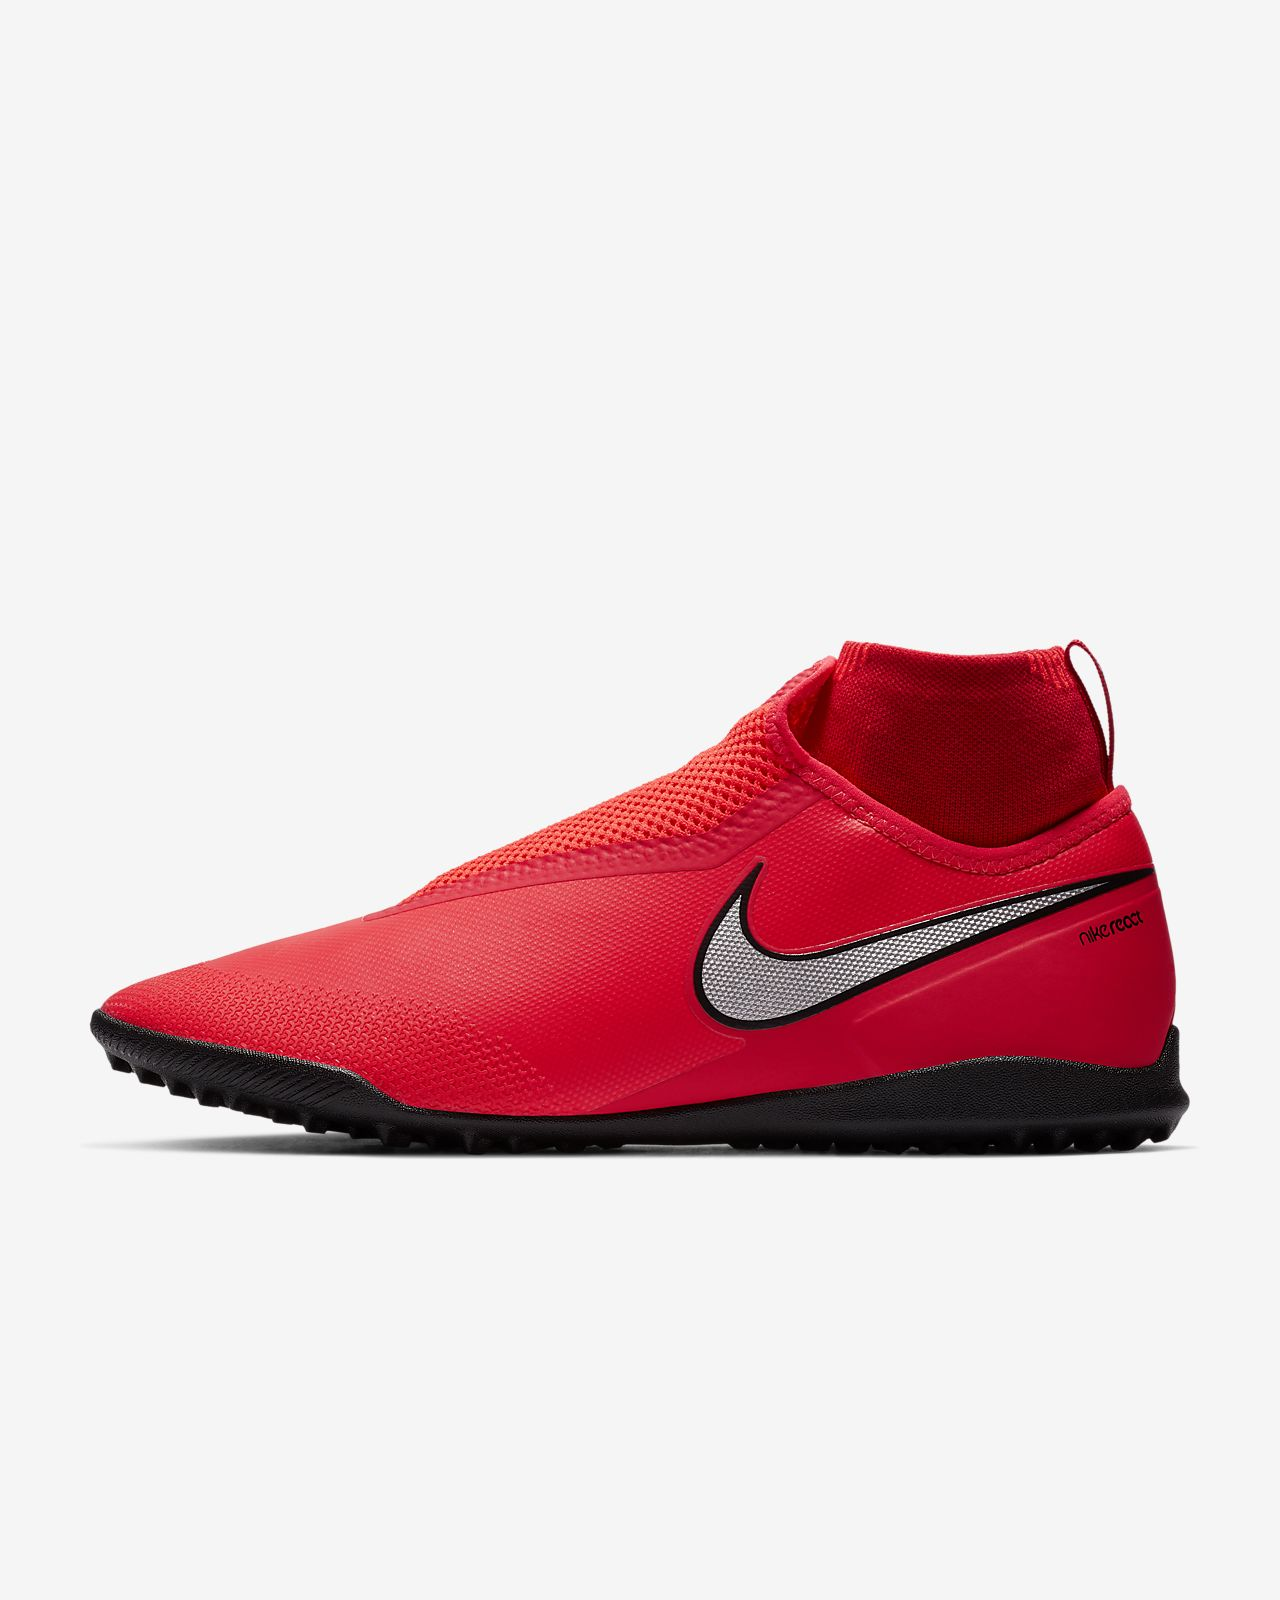 buy popular 0bb75 d999c ... Calzado de fútbol para terreno artificial Nike React PhantomVSN Pro  Dynamic Fit Game Over TF